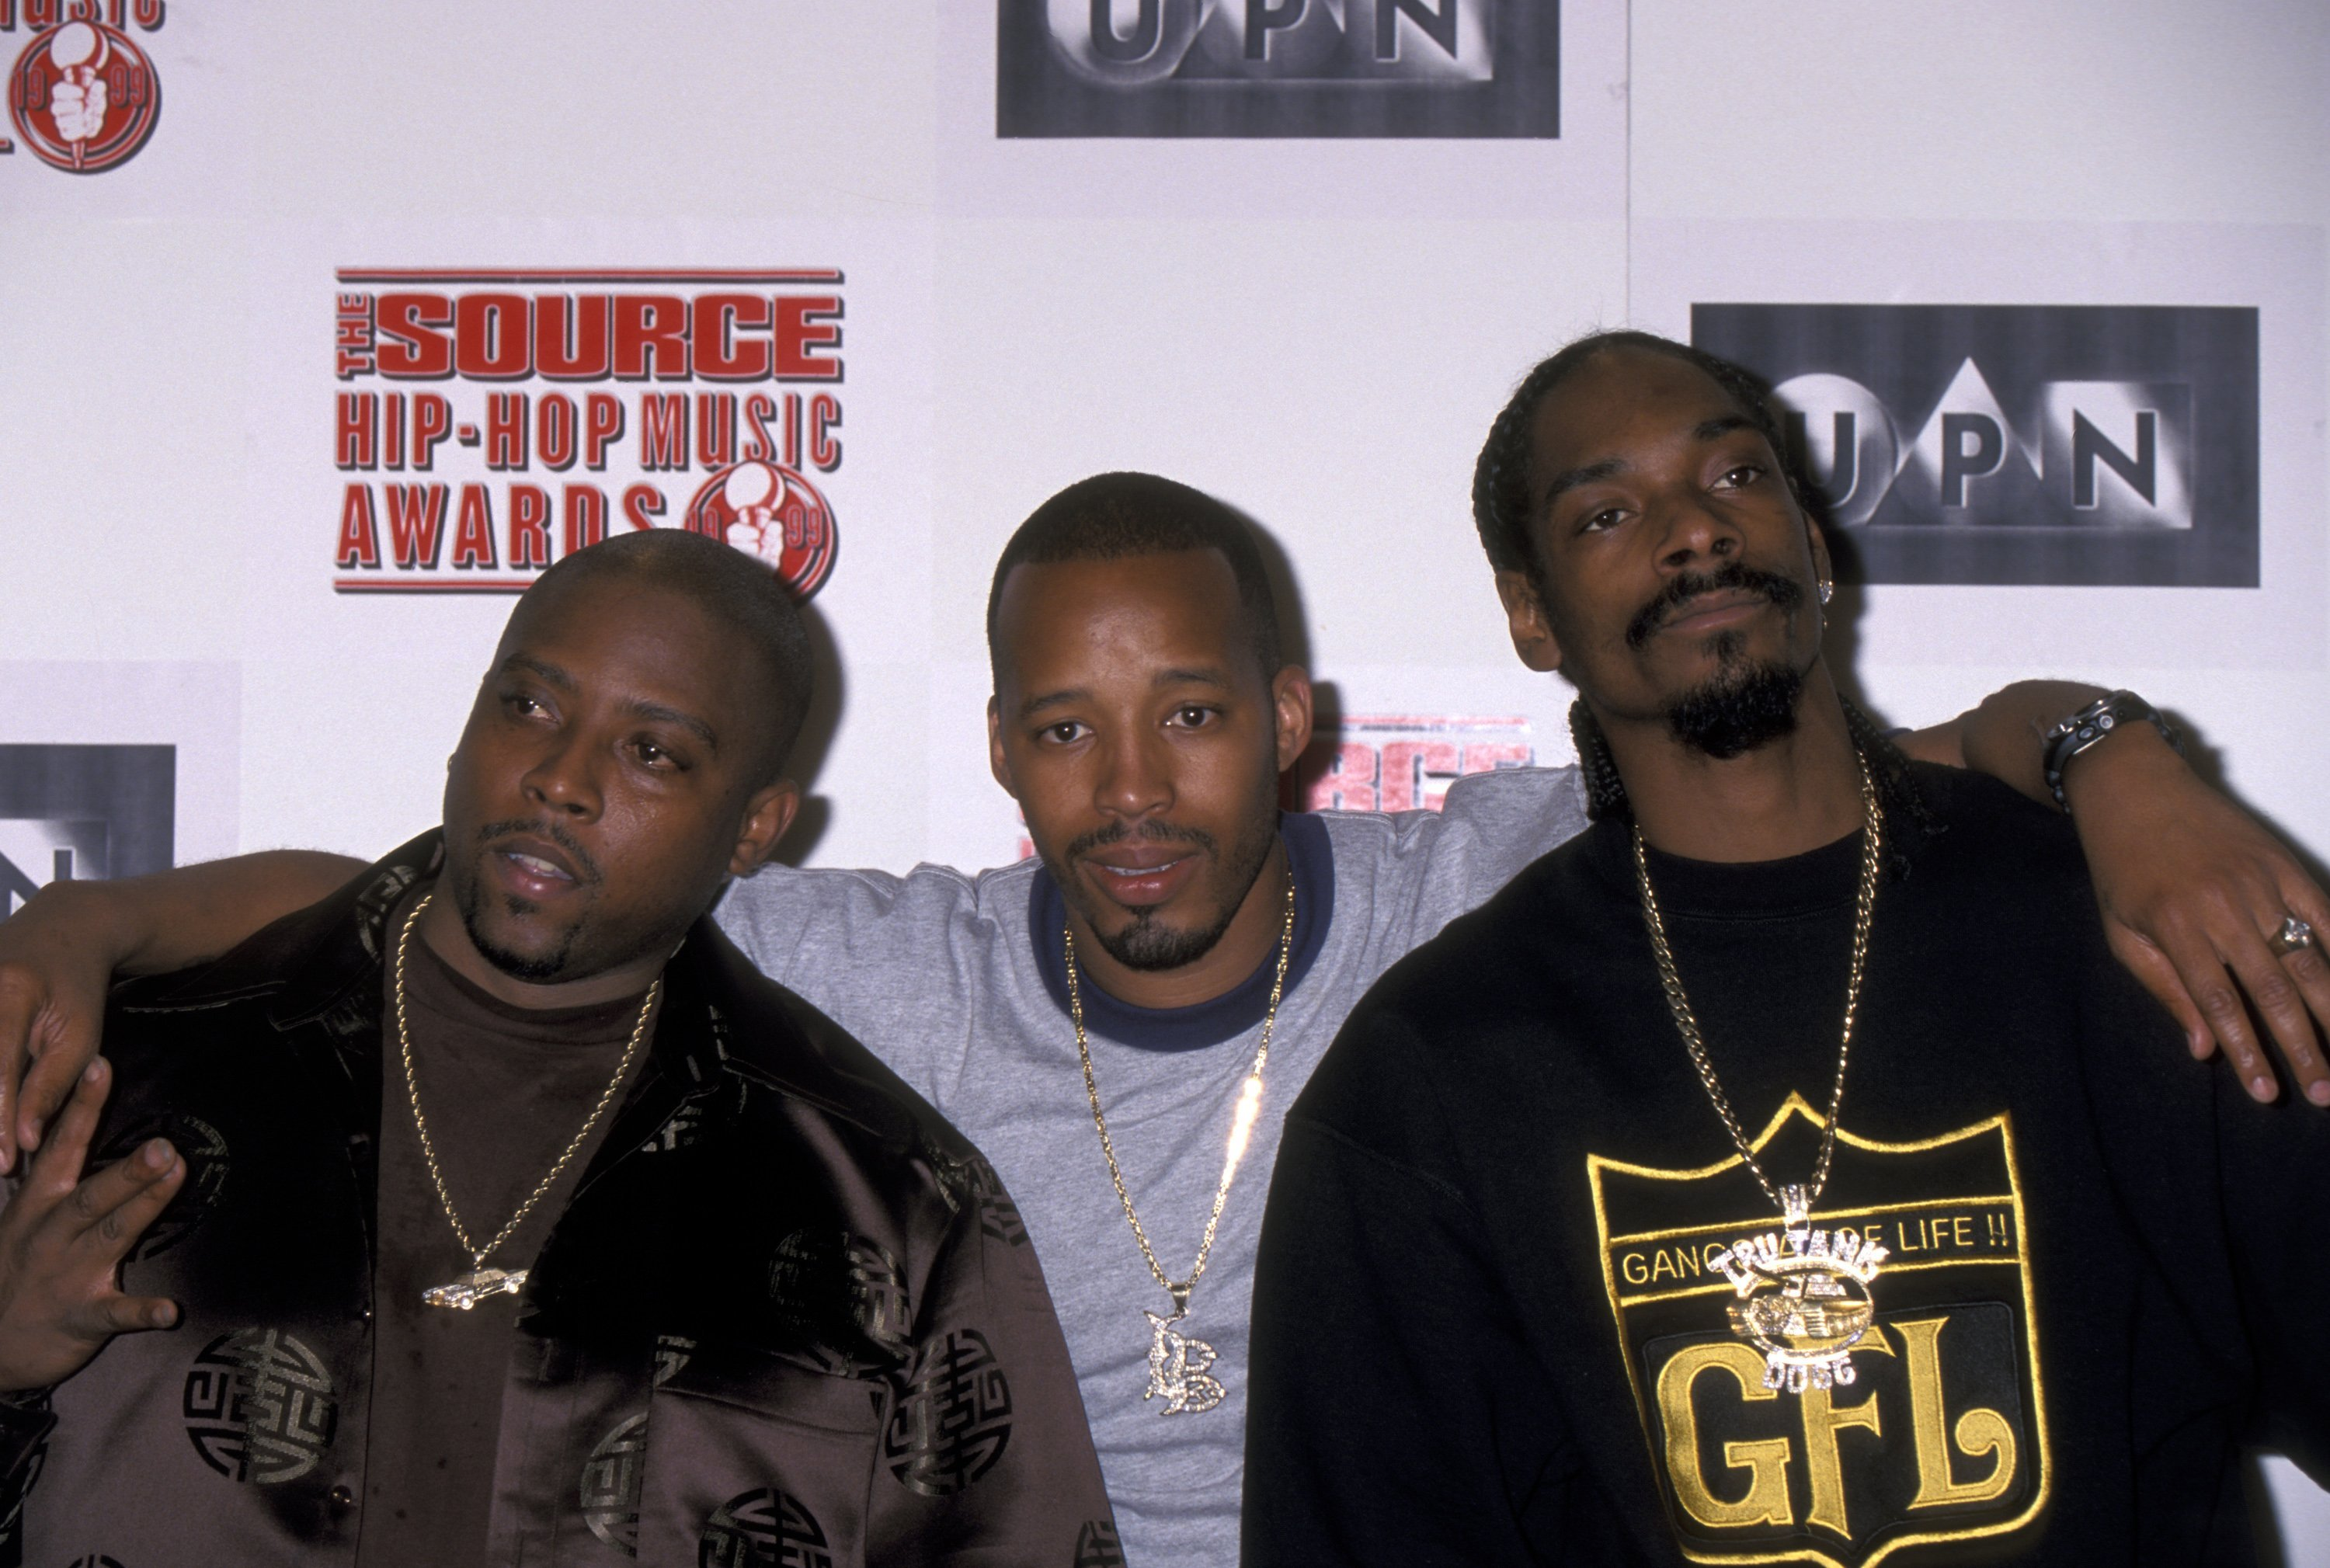 """Snoop Dogg, Nate Dogg and Warren G of """"213"""" during Snoop Dogg, Nate Dogg and Warren G Form Hip Hop Supergroup 213 at Millenium Hotel 